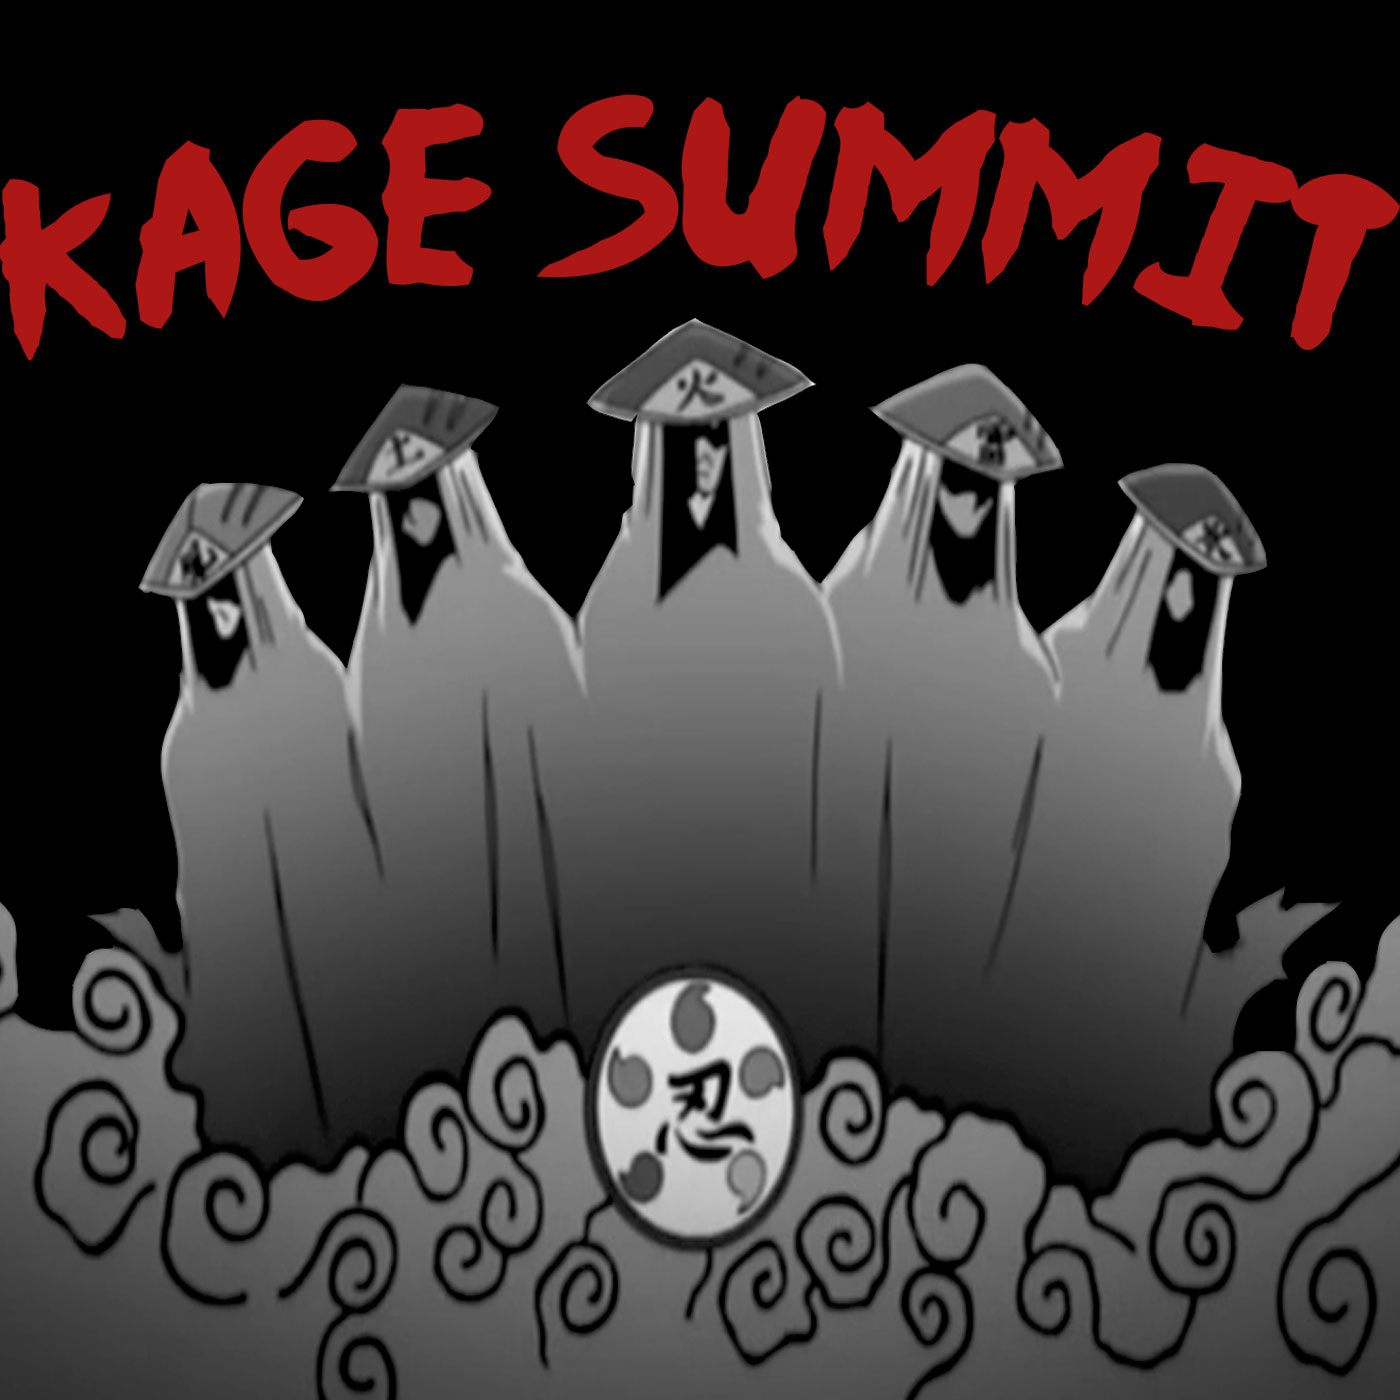 Kage Summit